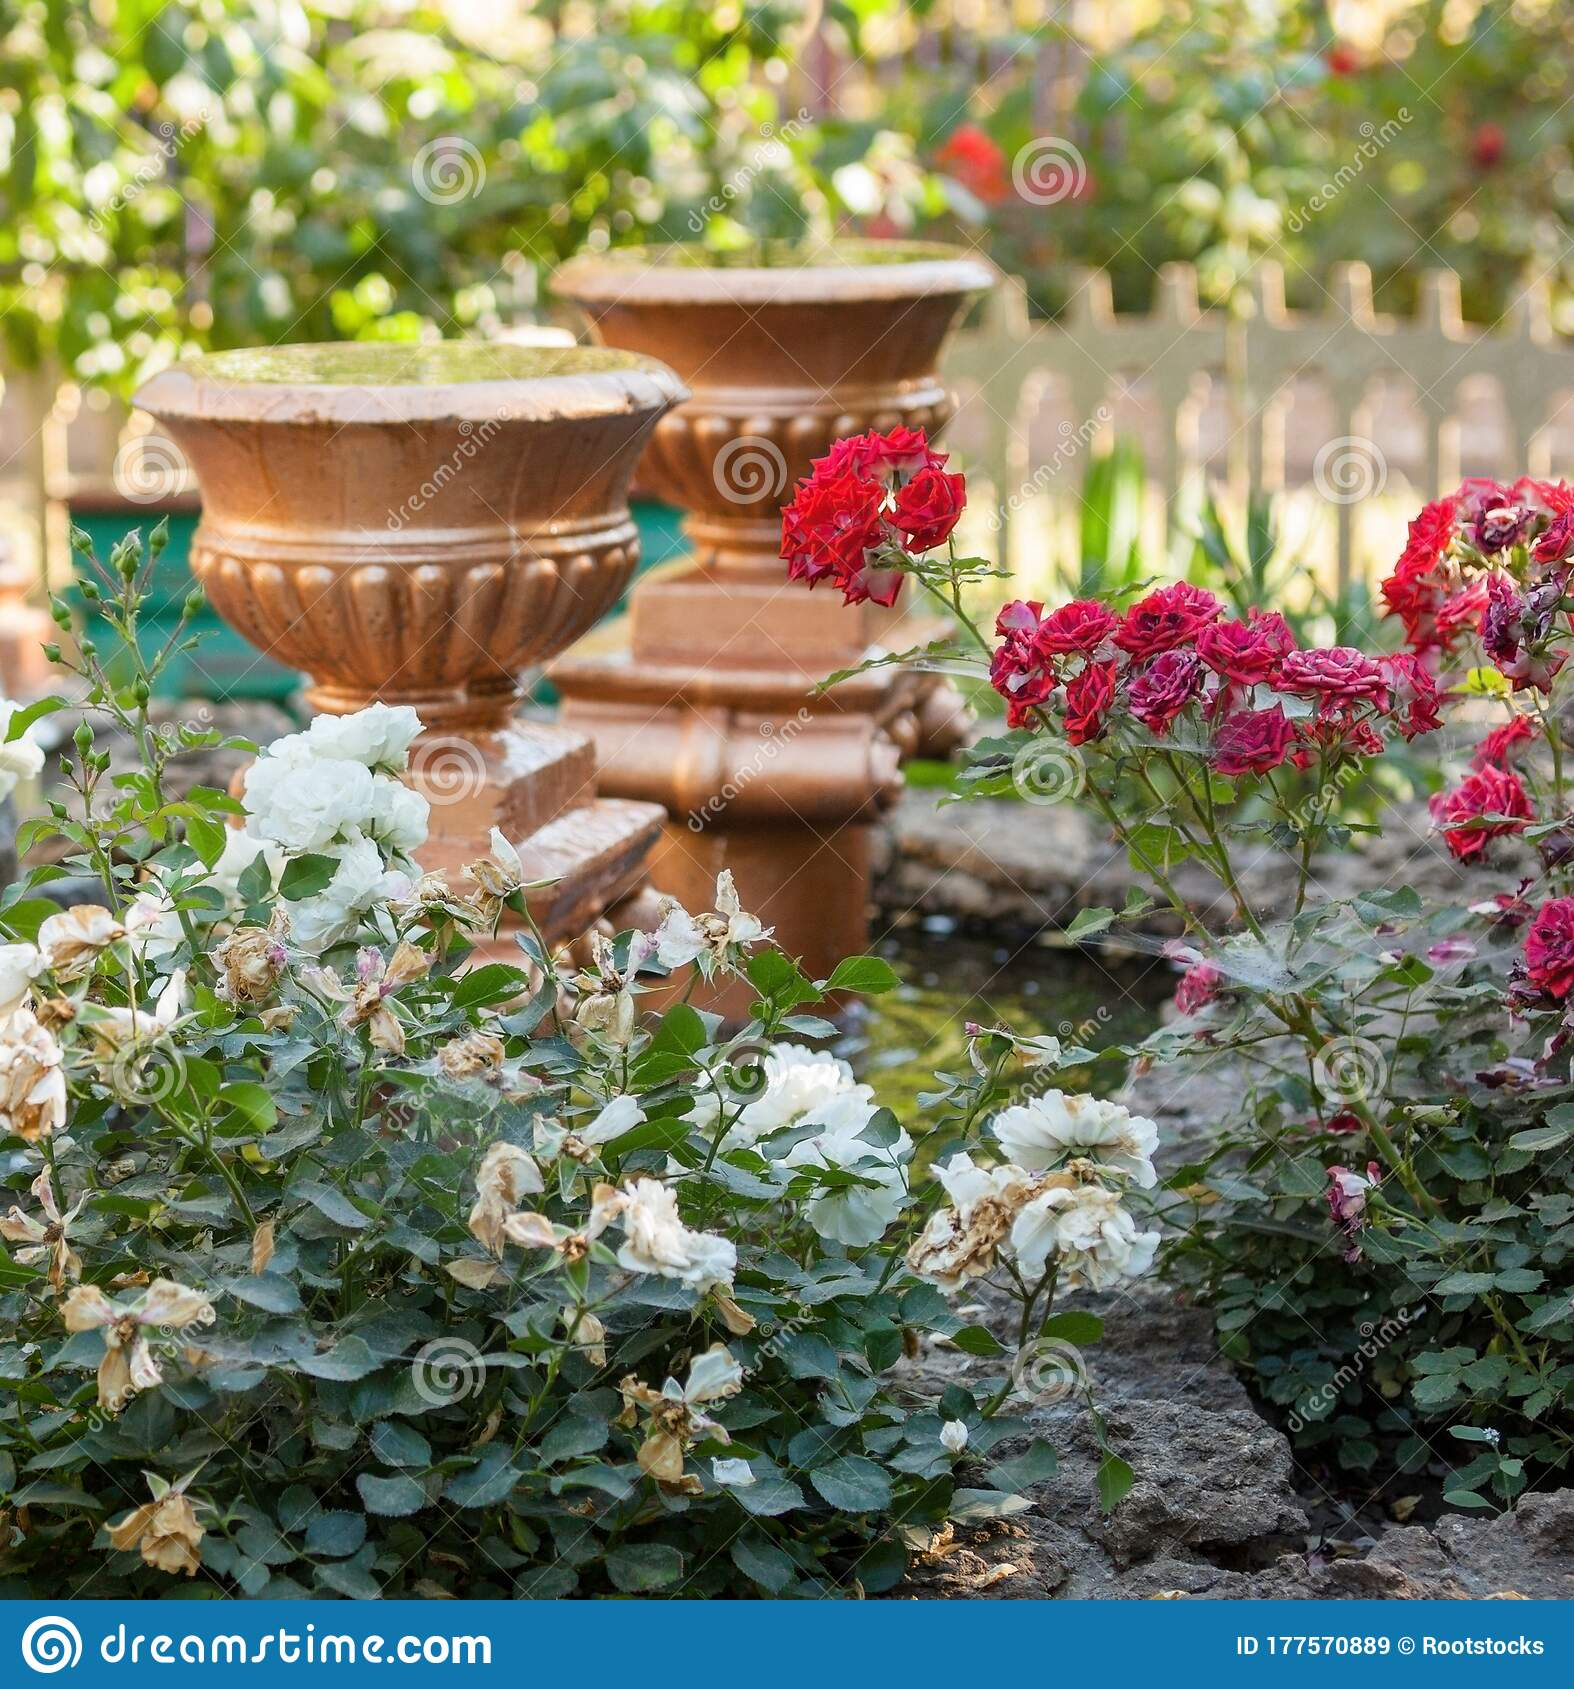 Roses Vases And Pond In The Garden Stock Image Image Of Natural Ceramic 177570889